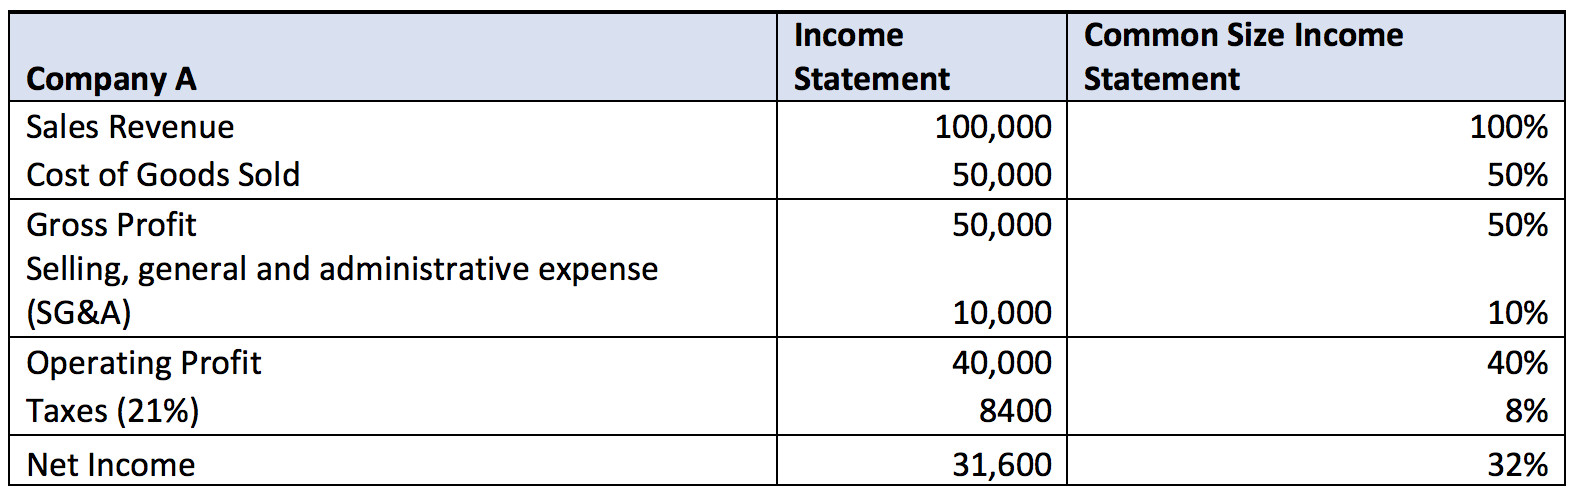 Common Size Income Statement Template Mon Size In E Statement